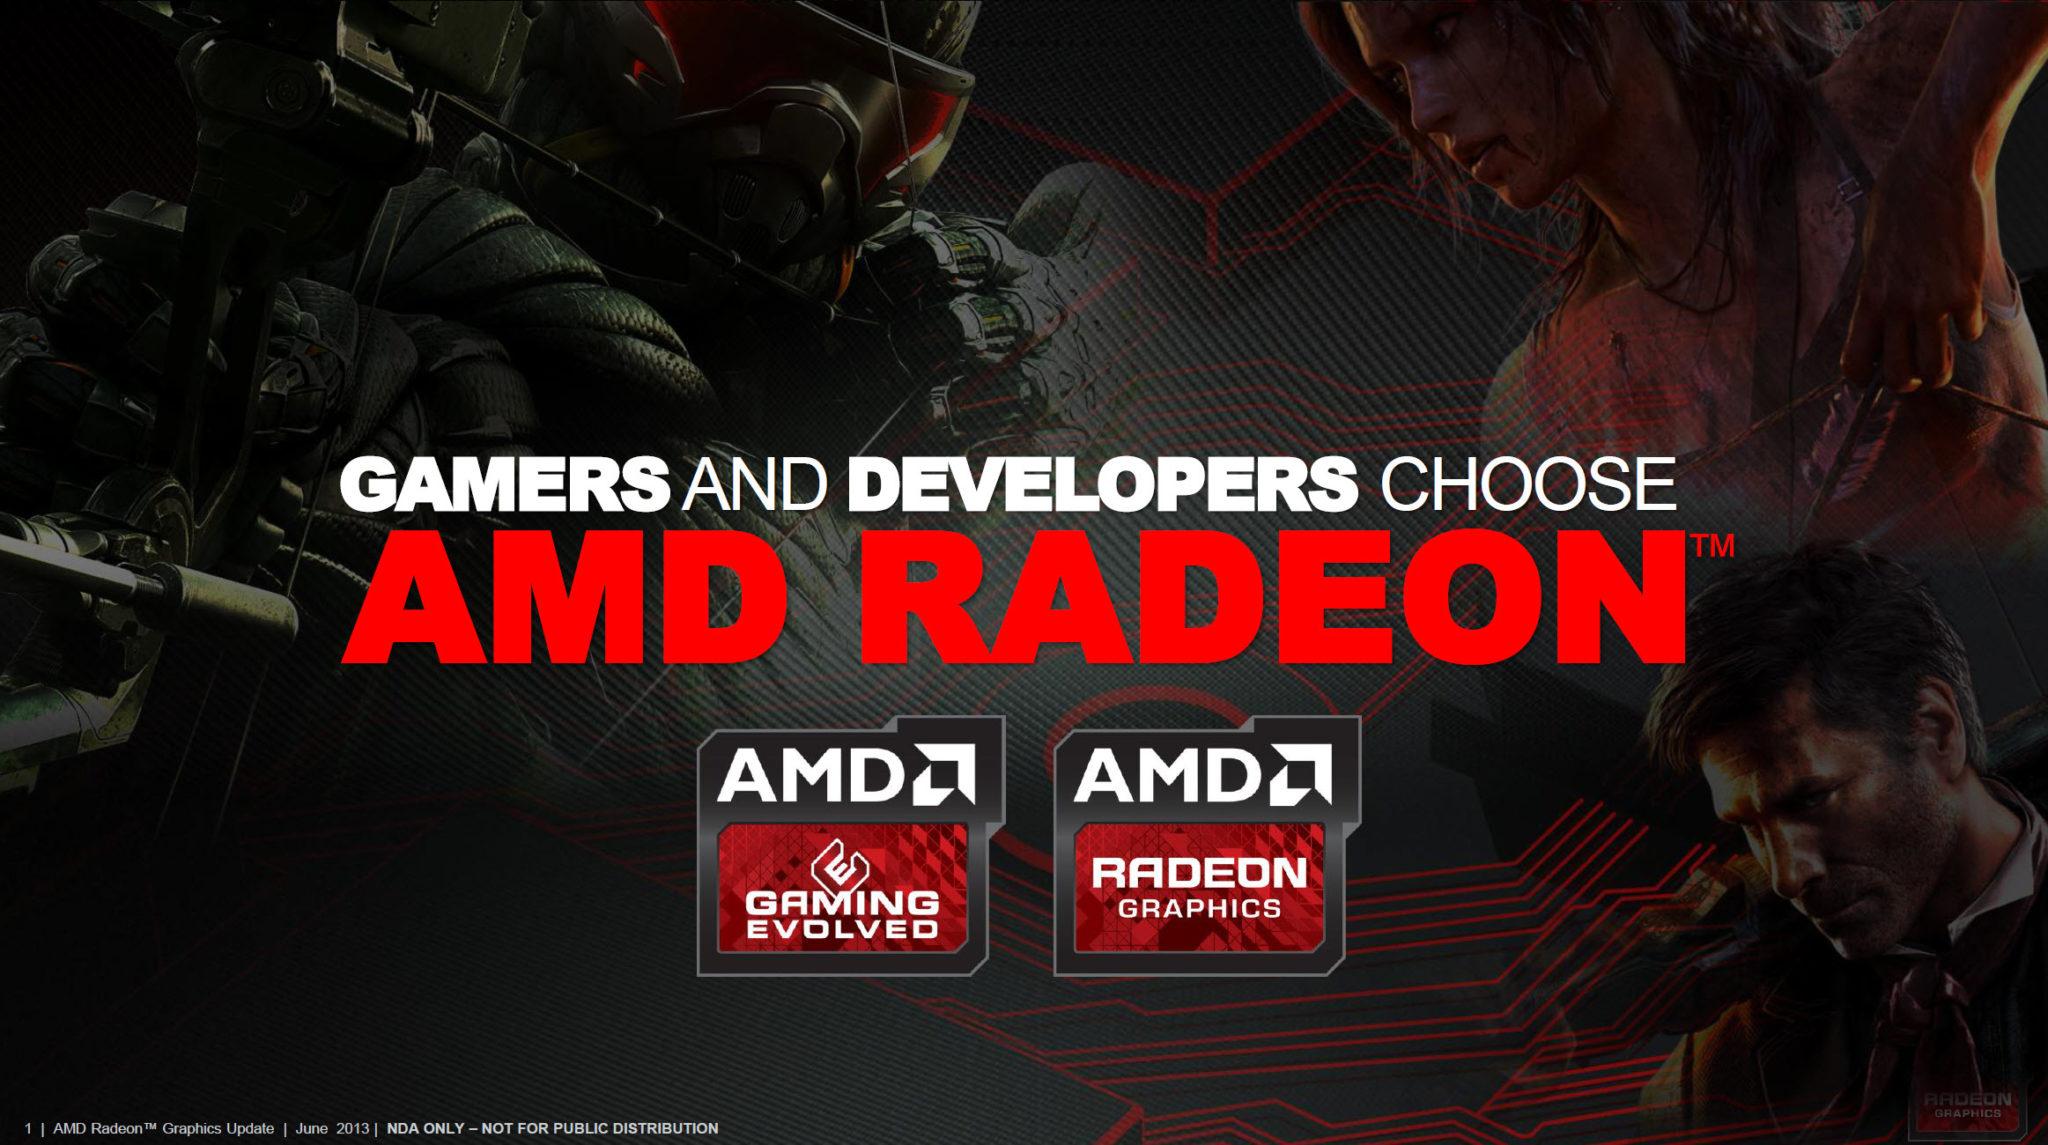 AMD-Radeon-Graphics-Trends